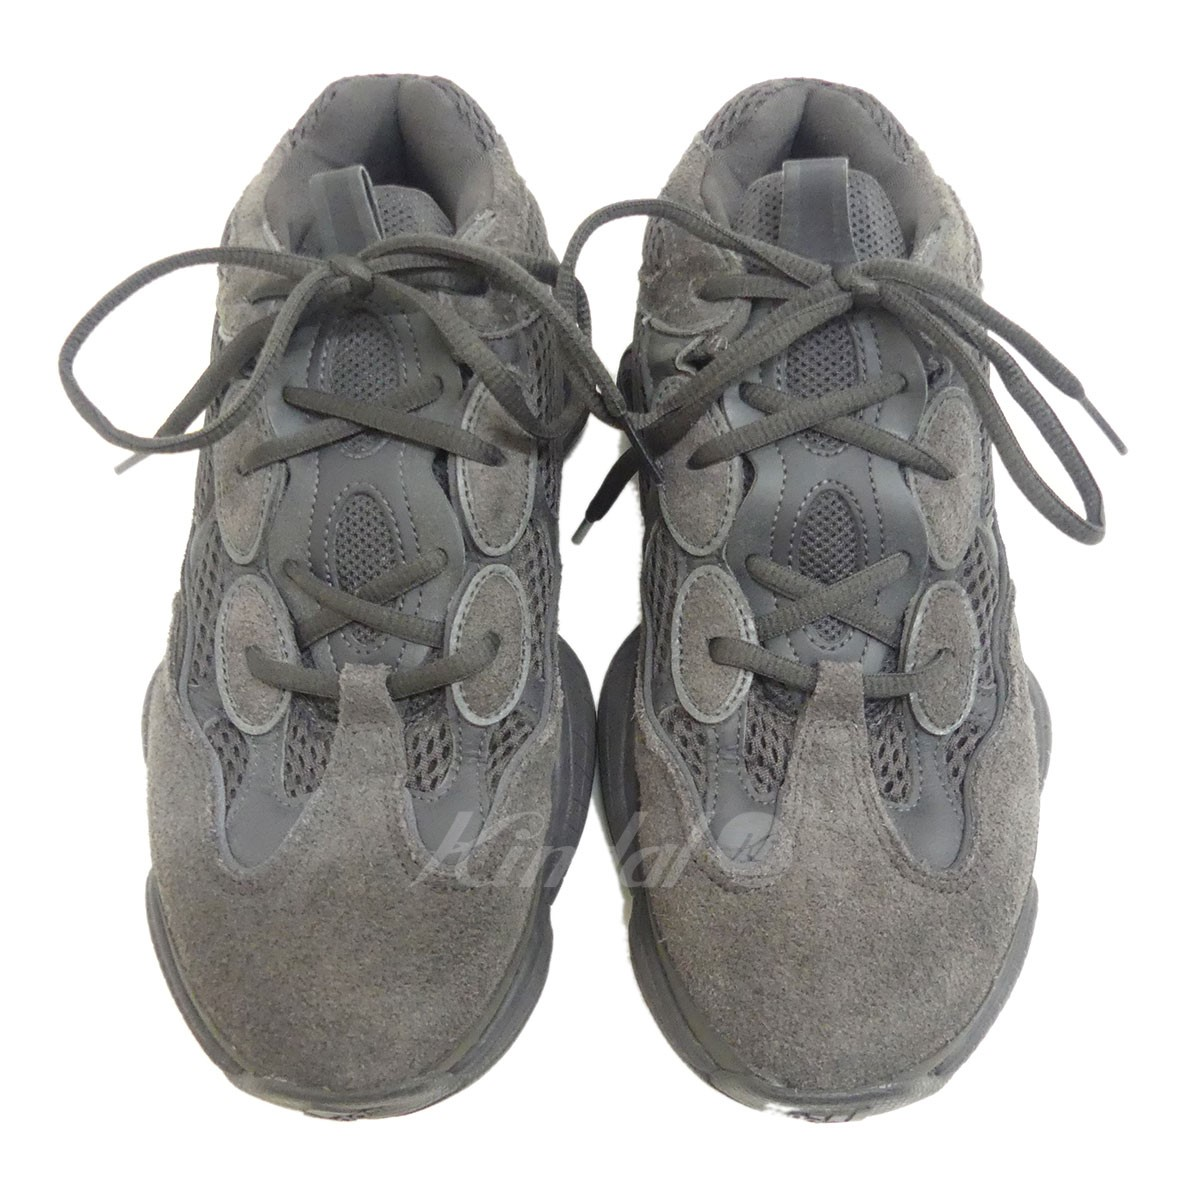 timeless design b4fe4 c9d20 adidas Originals by Kanye West YEEZY 500 sneakers gray size: 25. 5cm  (Adidas originals by Kanie waist)